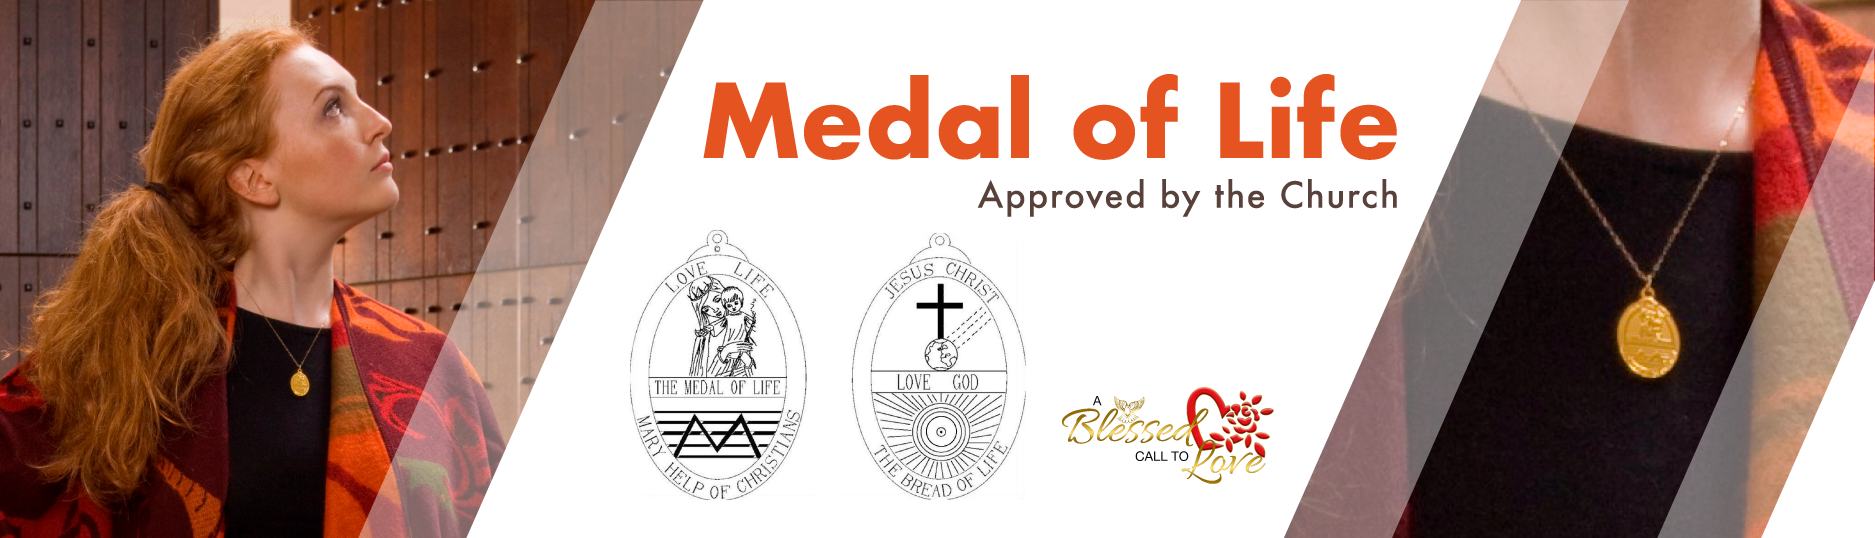 web-banner_medal of life.png